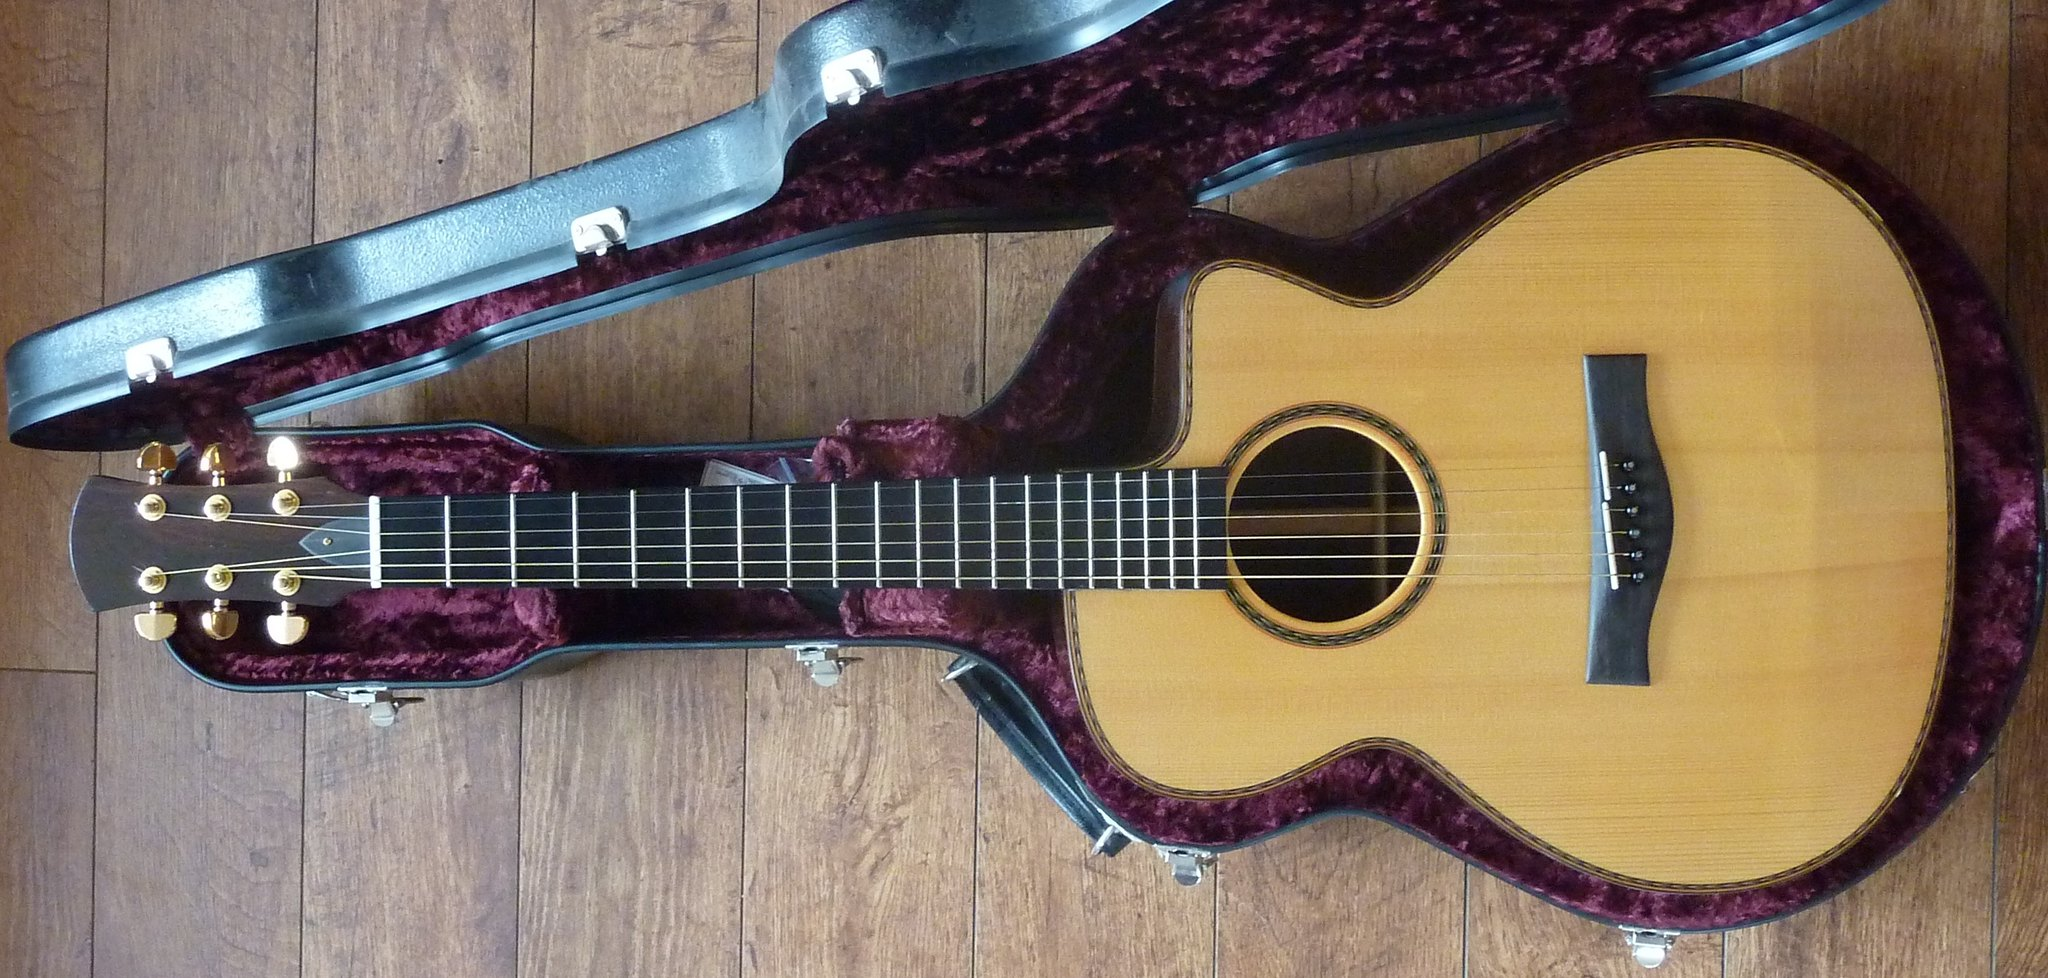 SOLD - 2005 Sobell Model 1 Sicilian Acoustic Guitar - The